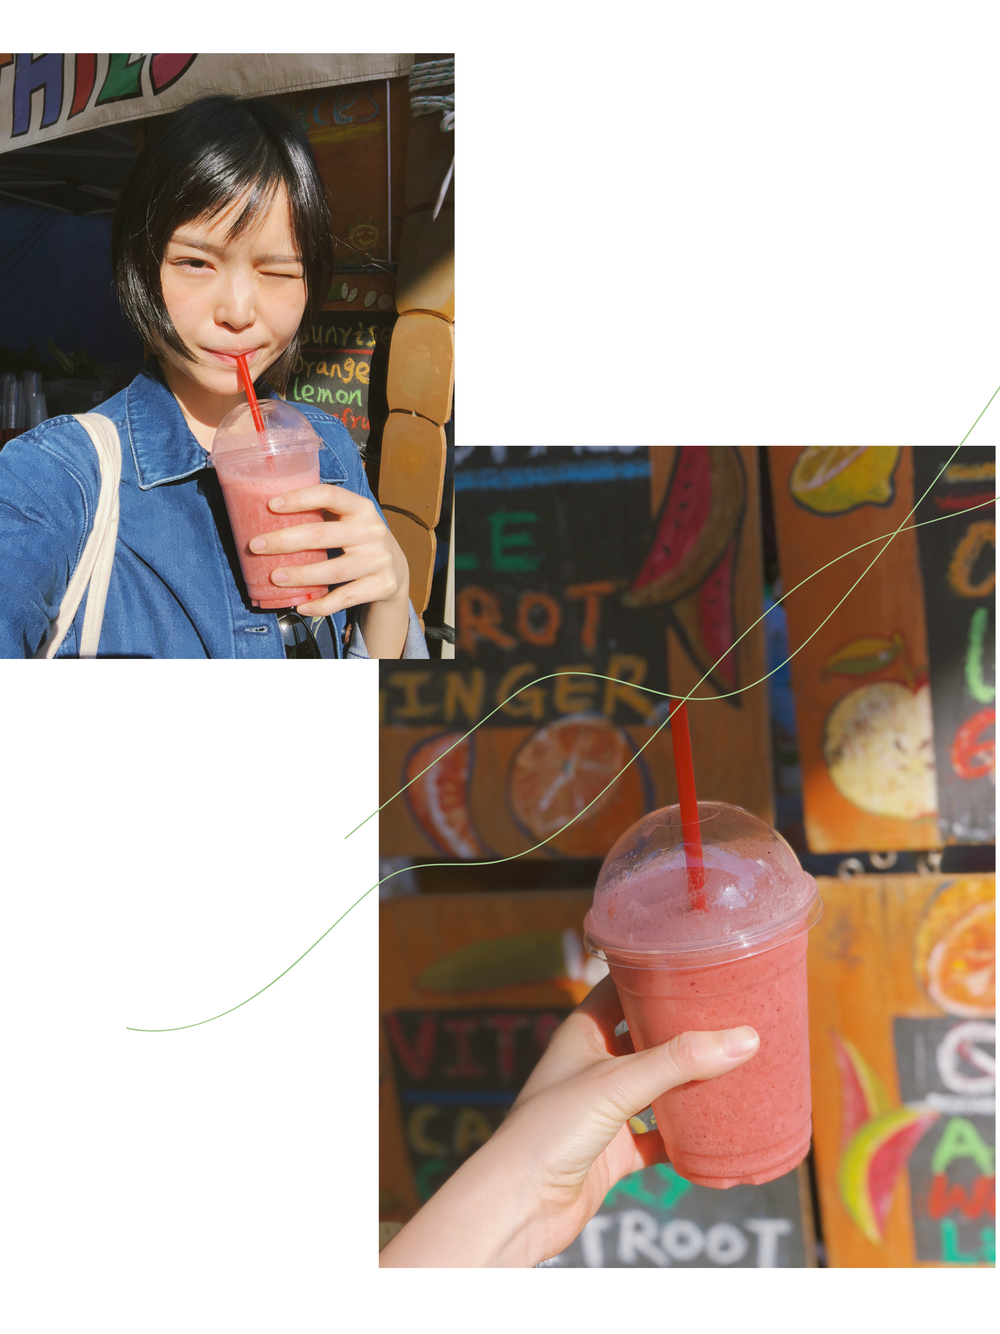 Having a fruit smoothie in a market in Sydney.